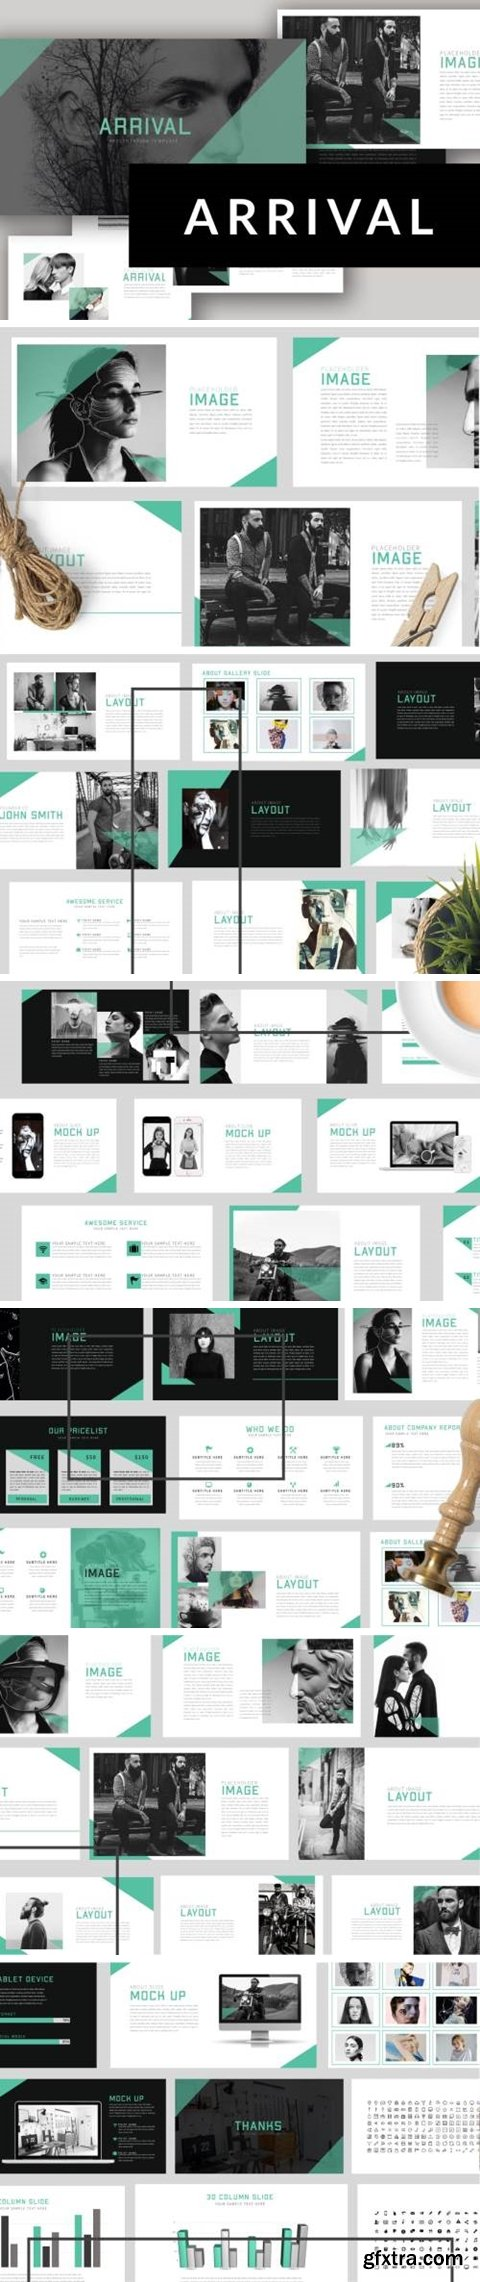 Arrival powerpoint & Keynote Template